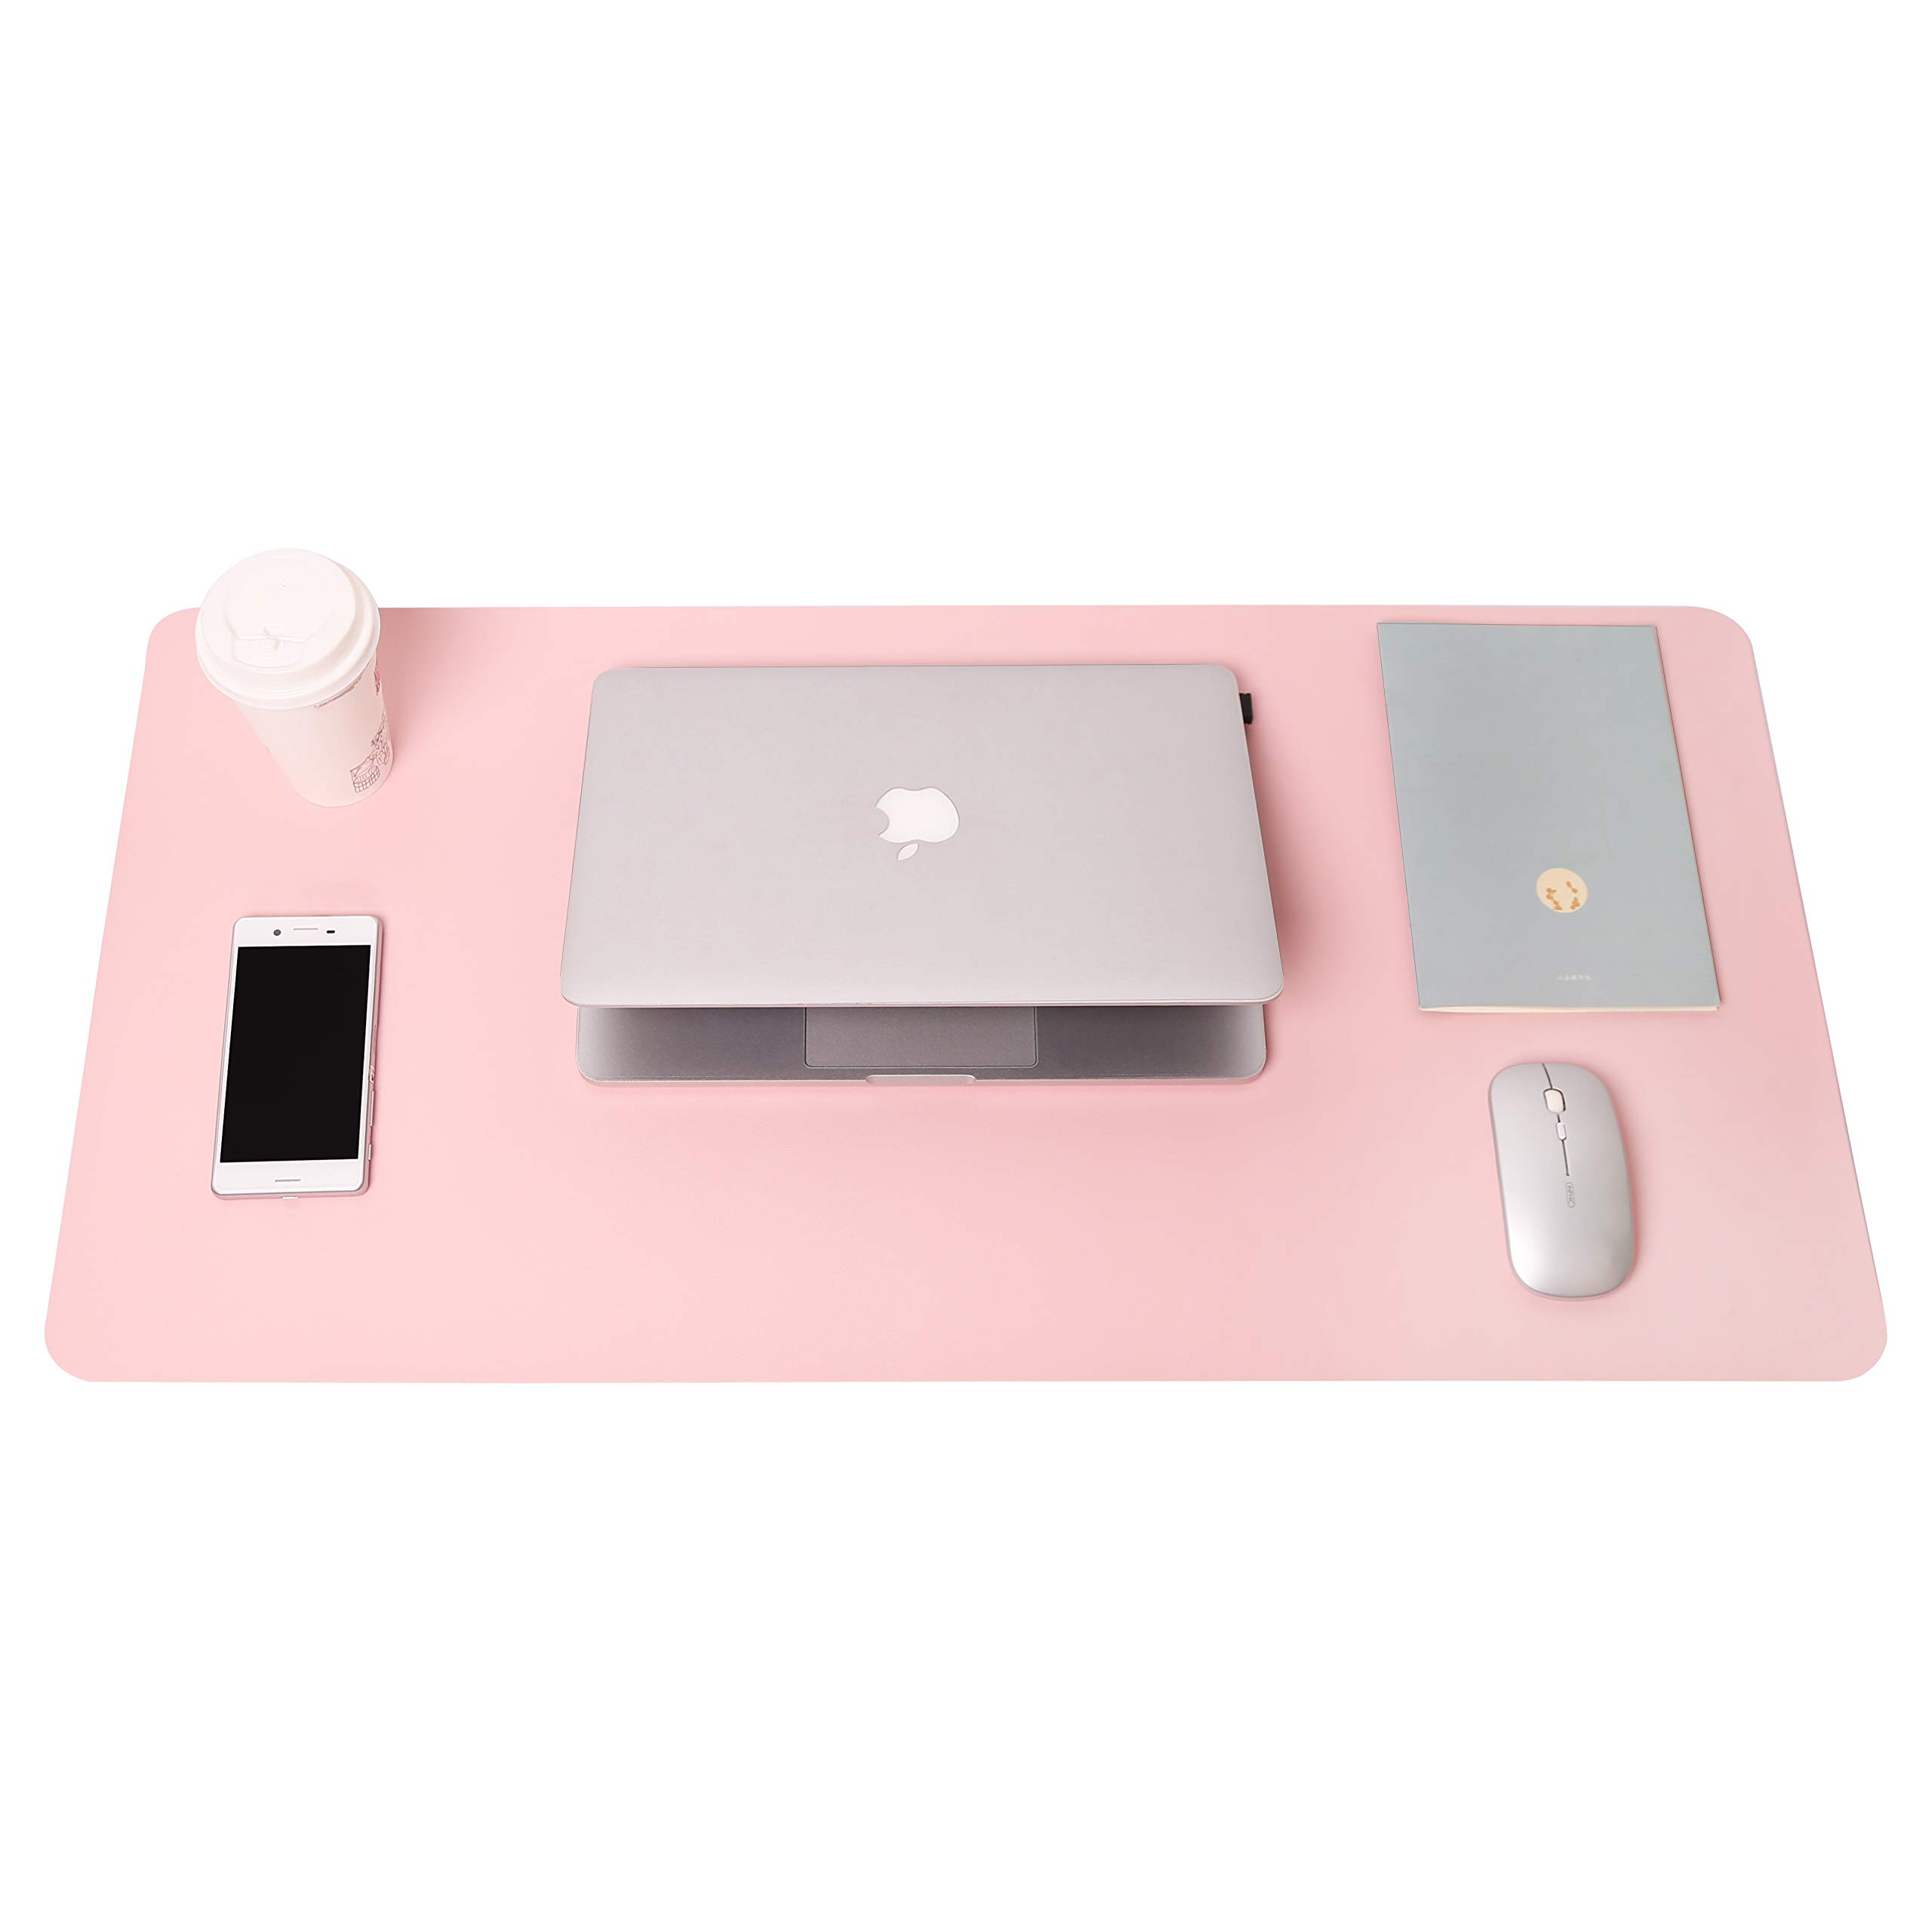 YSAGi Multifunctional Office Desk Pad, Ultra Thin Waterproof PVC Leather Mouse Pad, Dual Use Desk Writing Mat for Office/Home (Pink, 31.5'' x 15.7'') by YSAGi